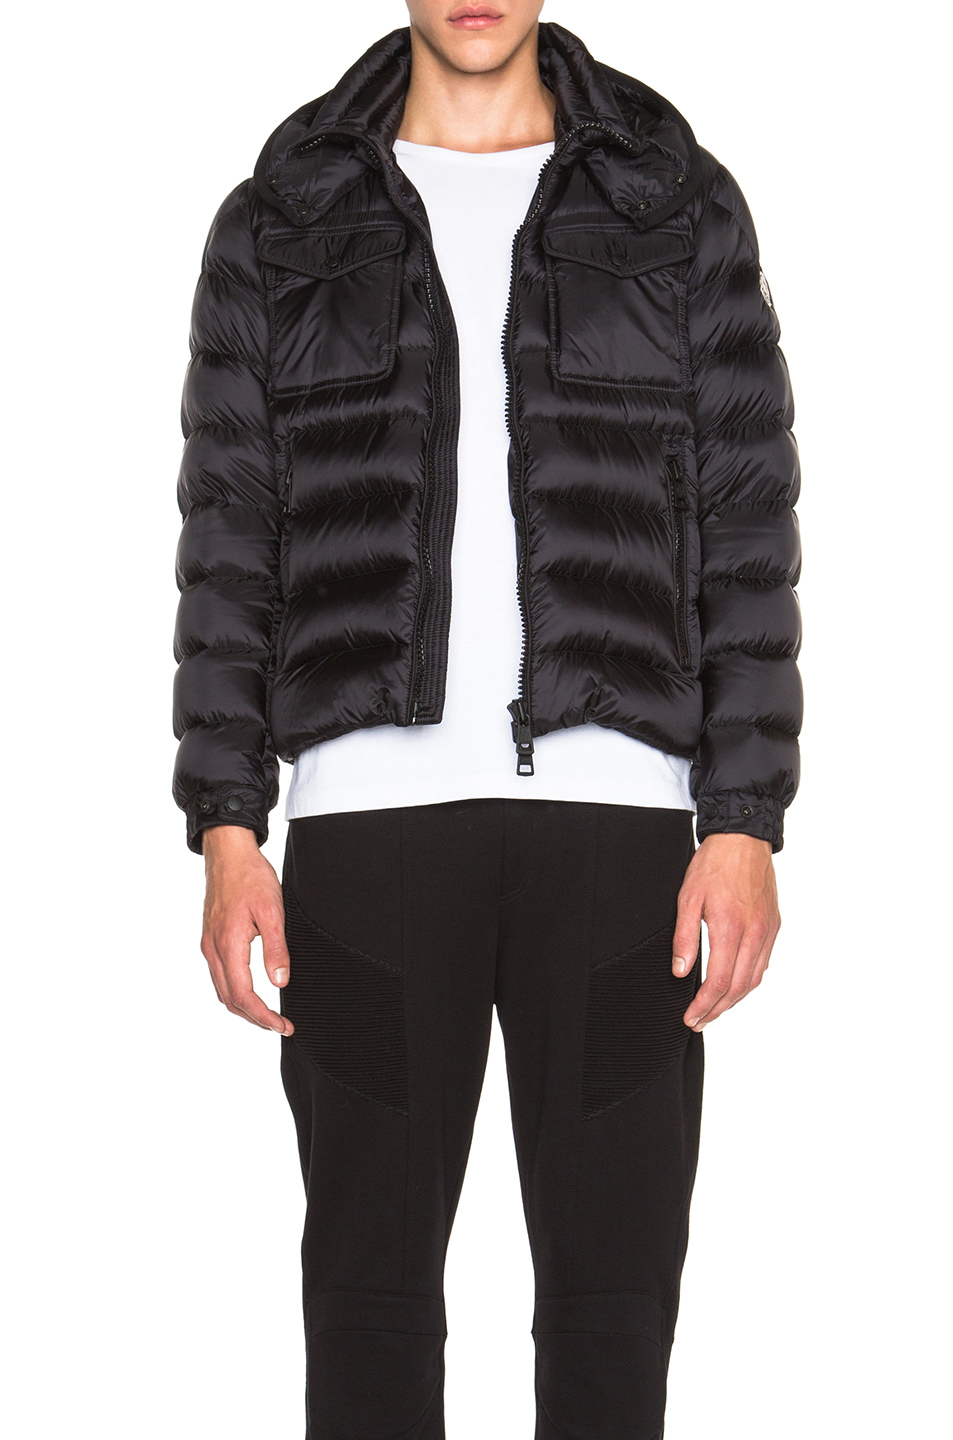 MONCLER Edward Jacket in Black